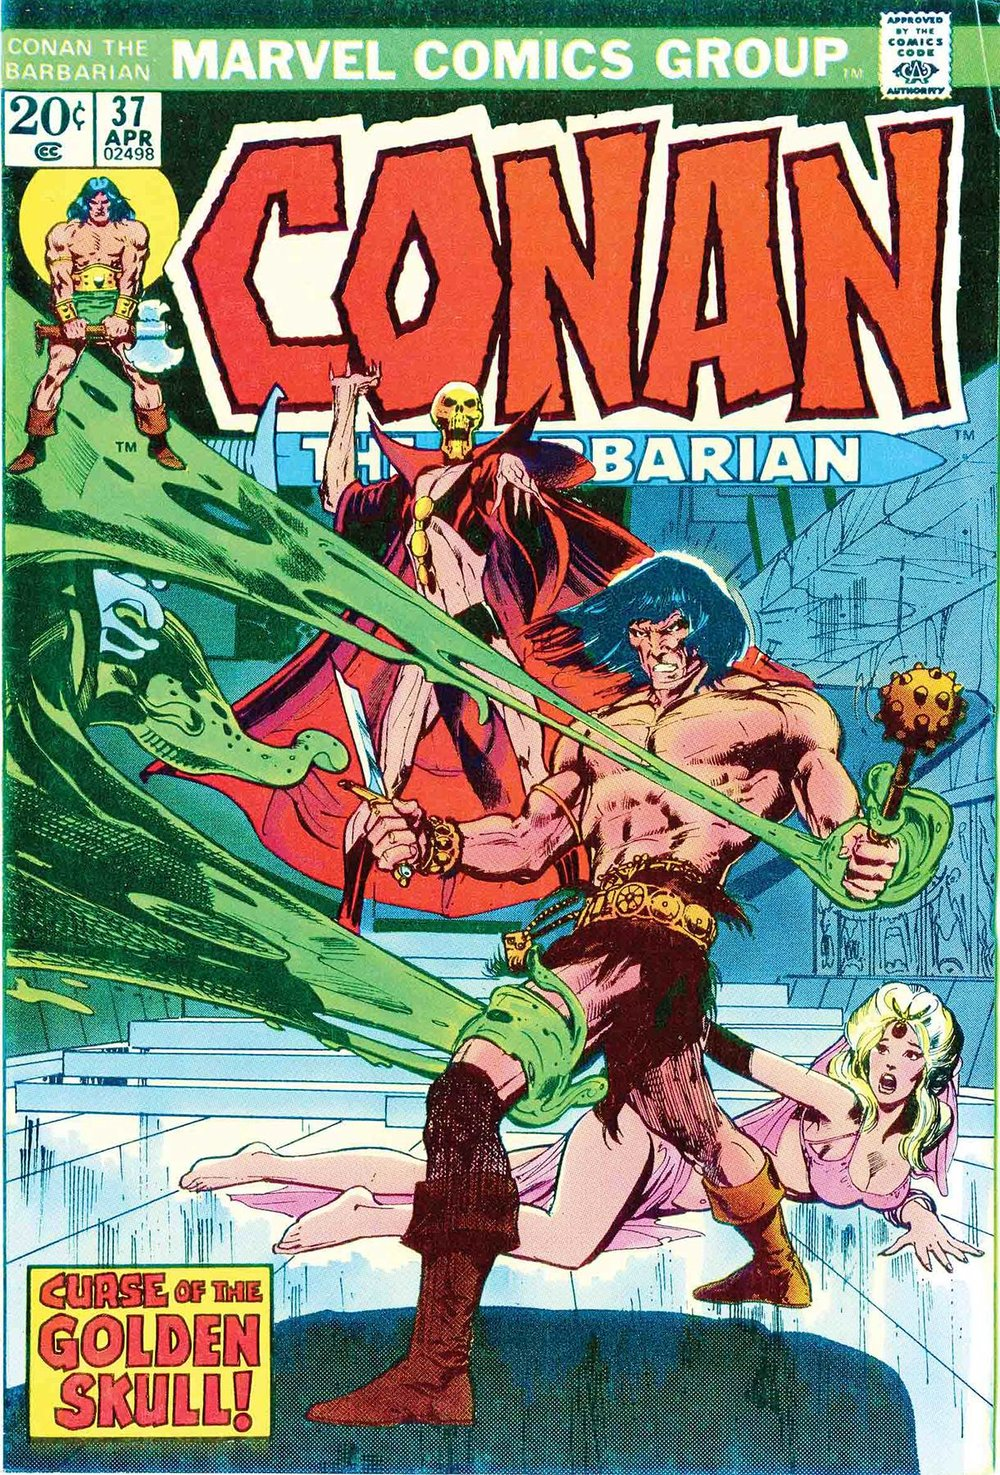 TRUE BELIEVERS CONAN CURSE OF GOLDEN SKULL 1.jpg